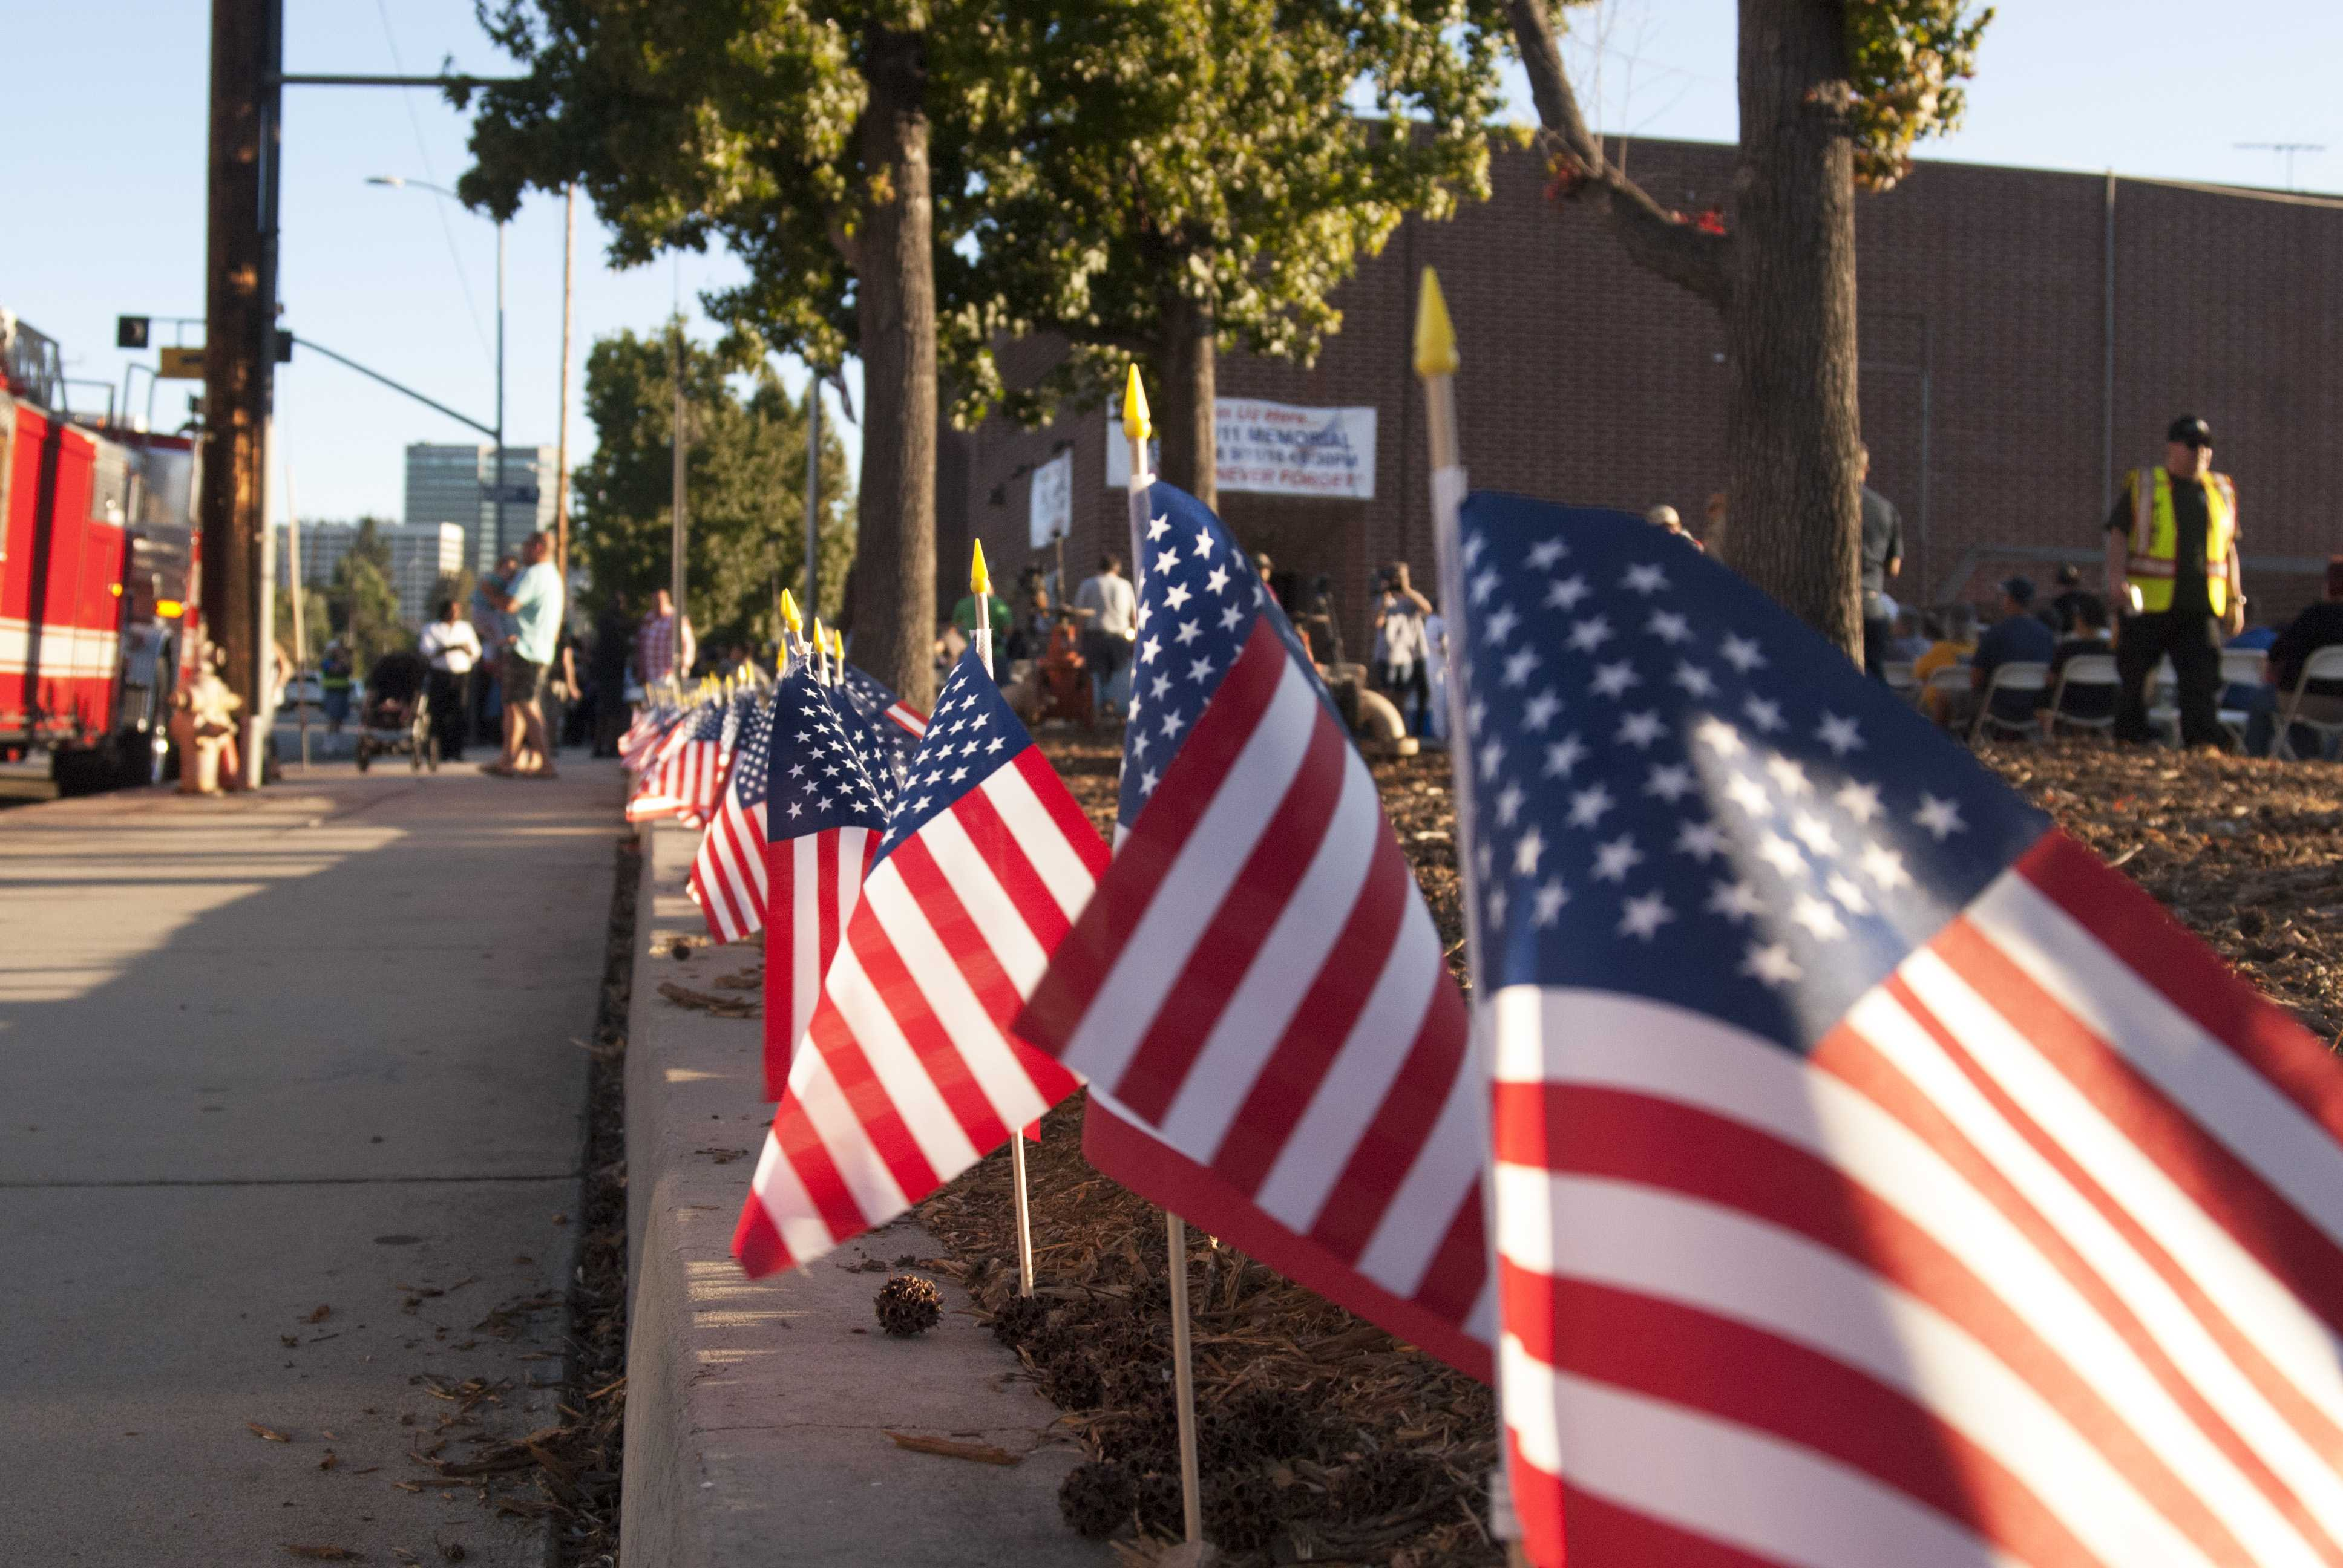 American flags line the perimeter of the LA fire department